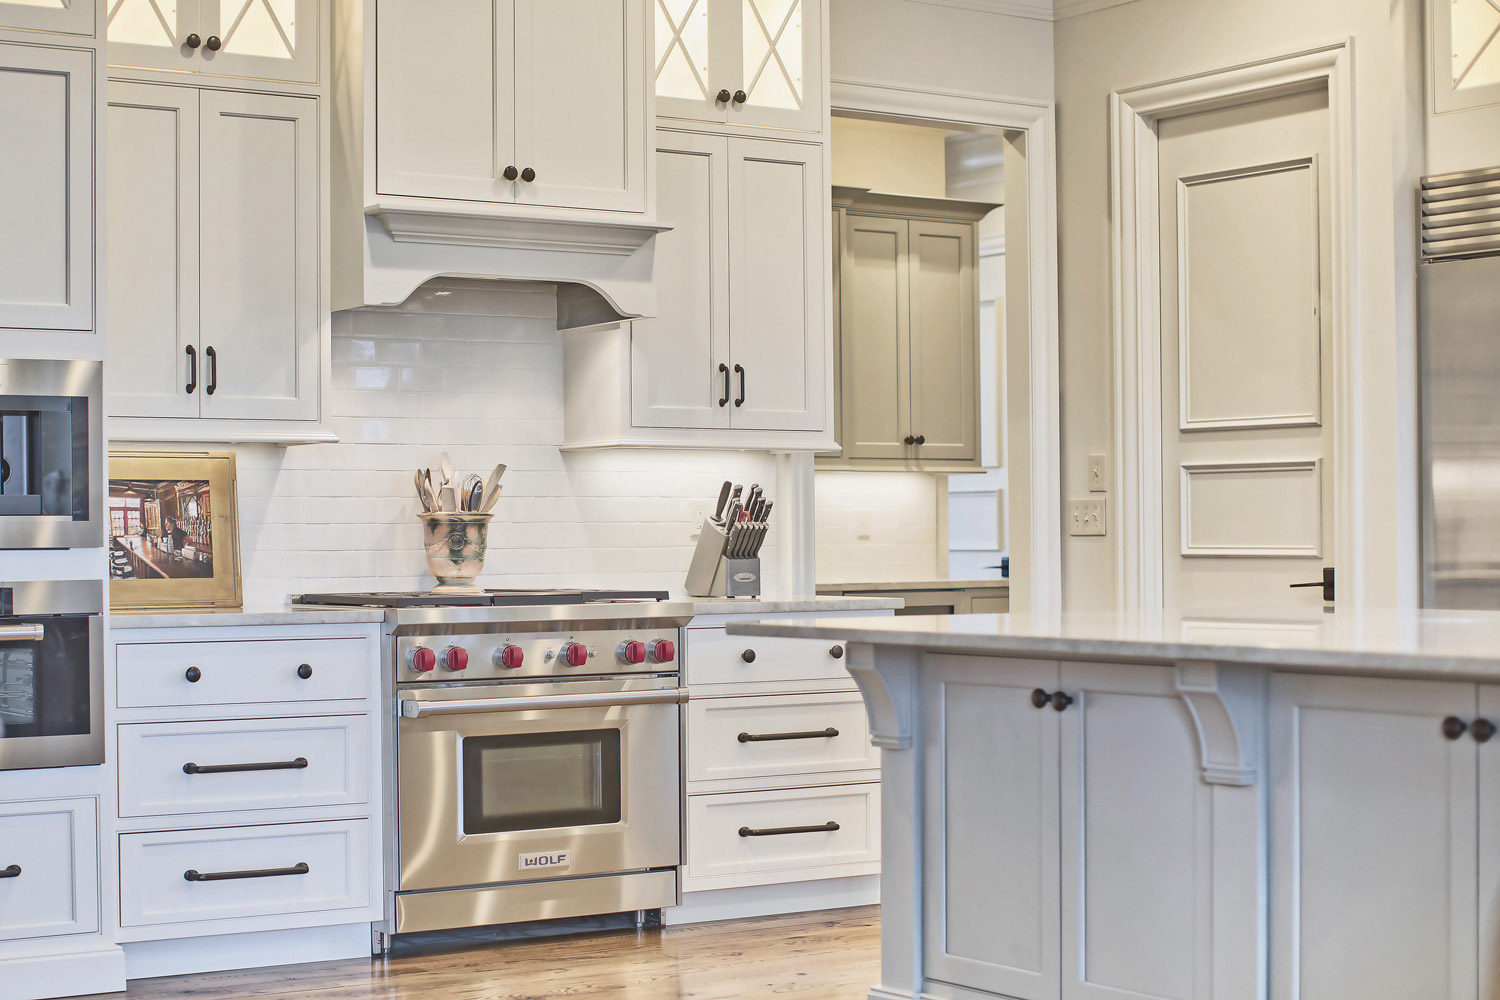 best kitchen stoves pictures of remodeled kitchens is a cooktop and wall oven or range for your design